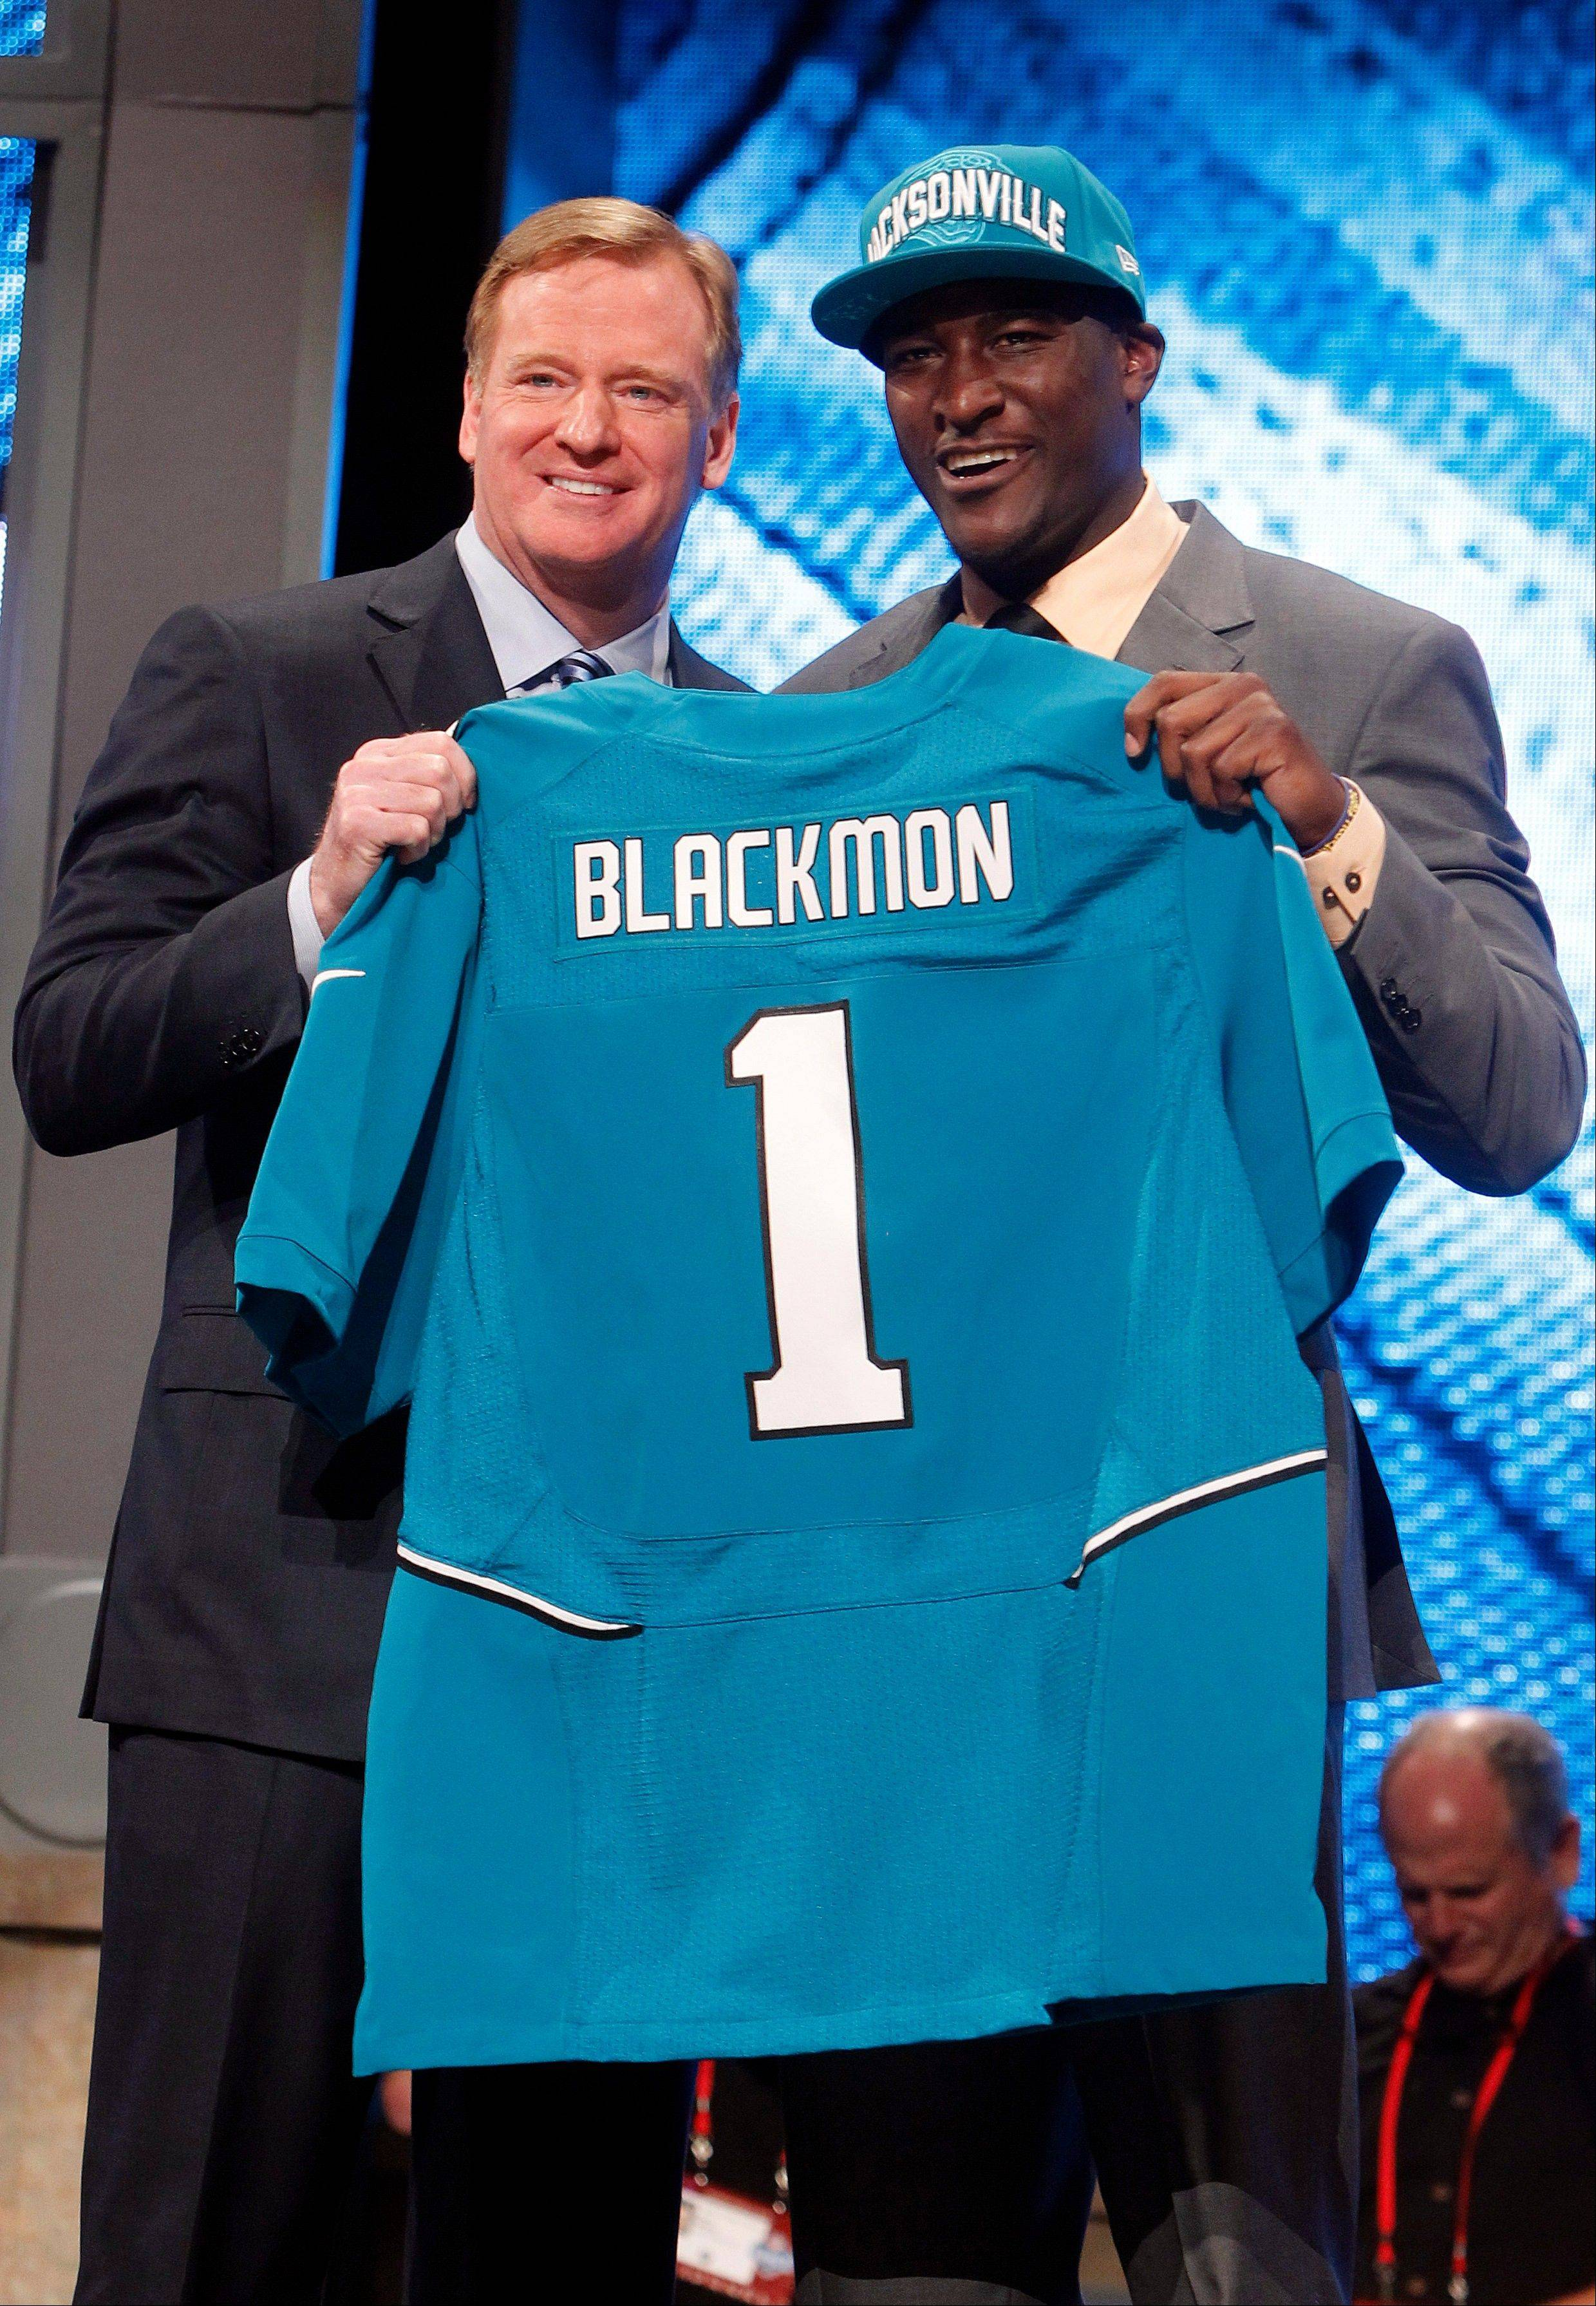 Wide receiver Justin Blackmon was the Jacksonville Jaguars' first-round pick in the 2012 draft.